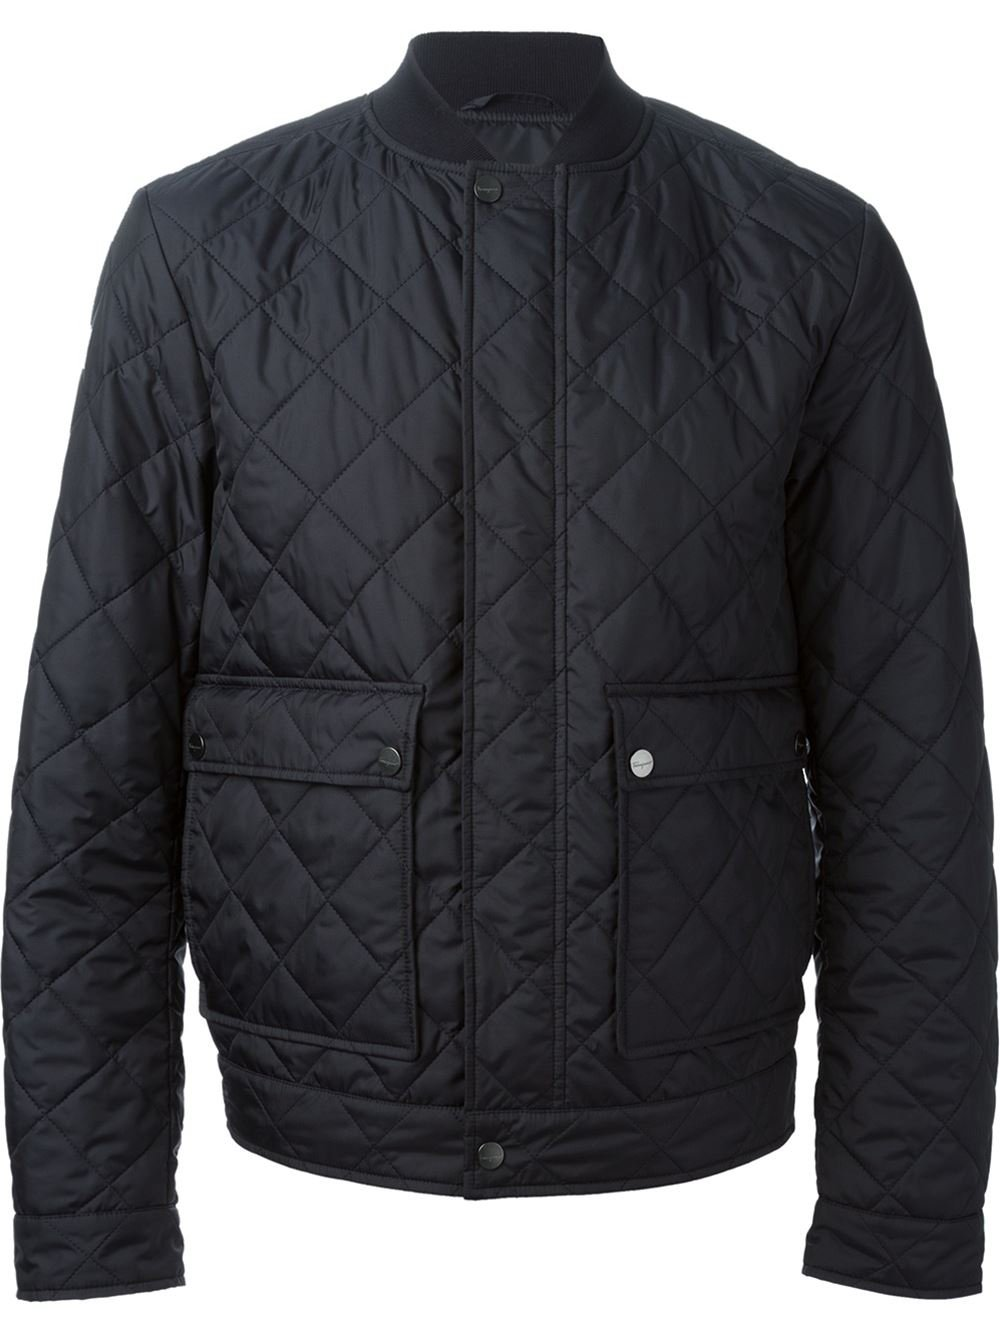 Ferragamo Quilted Jacket In Blue For Men Lyst